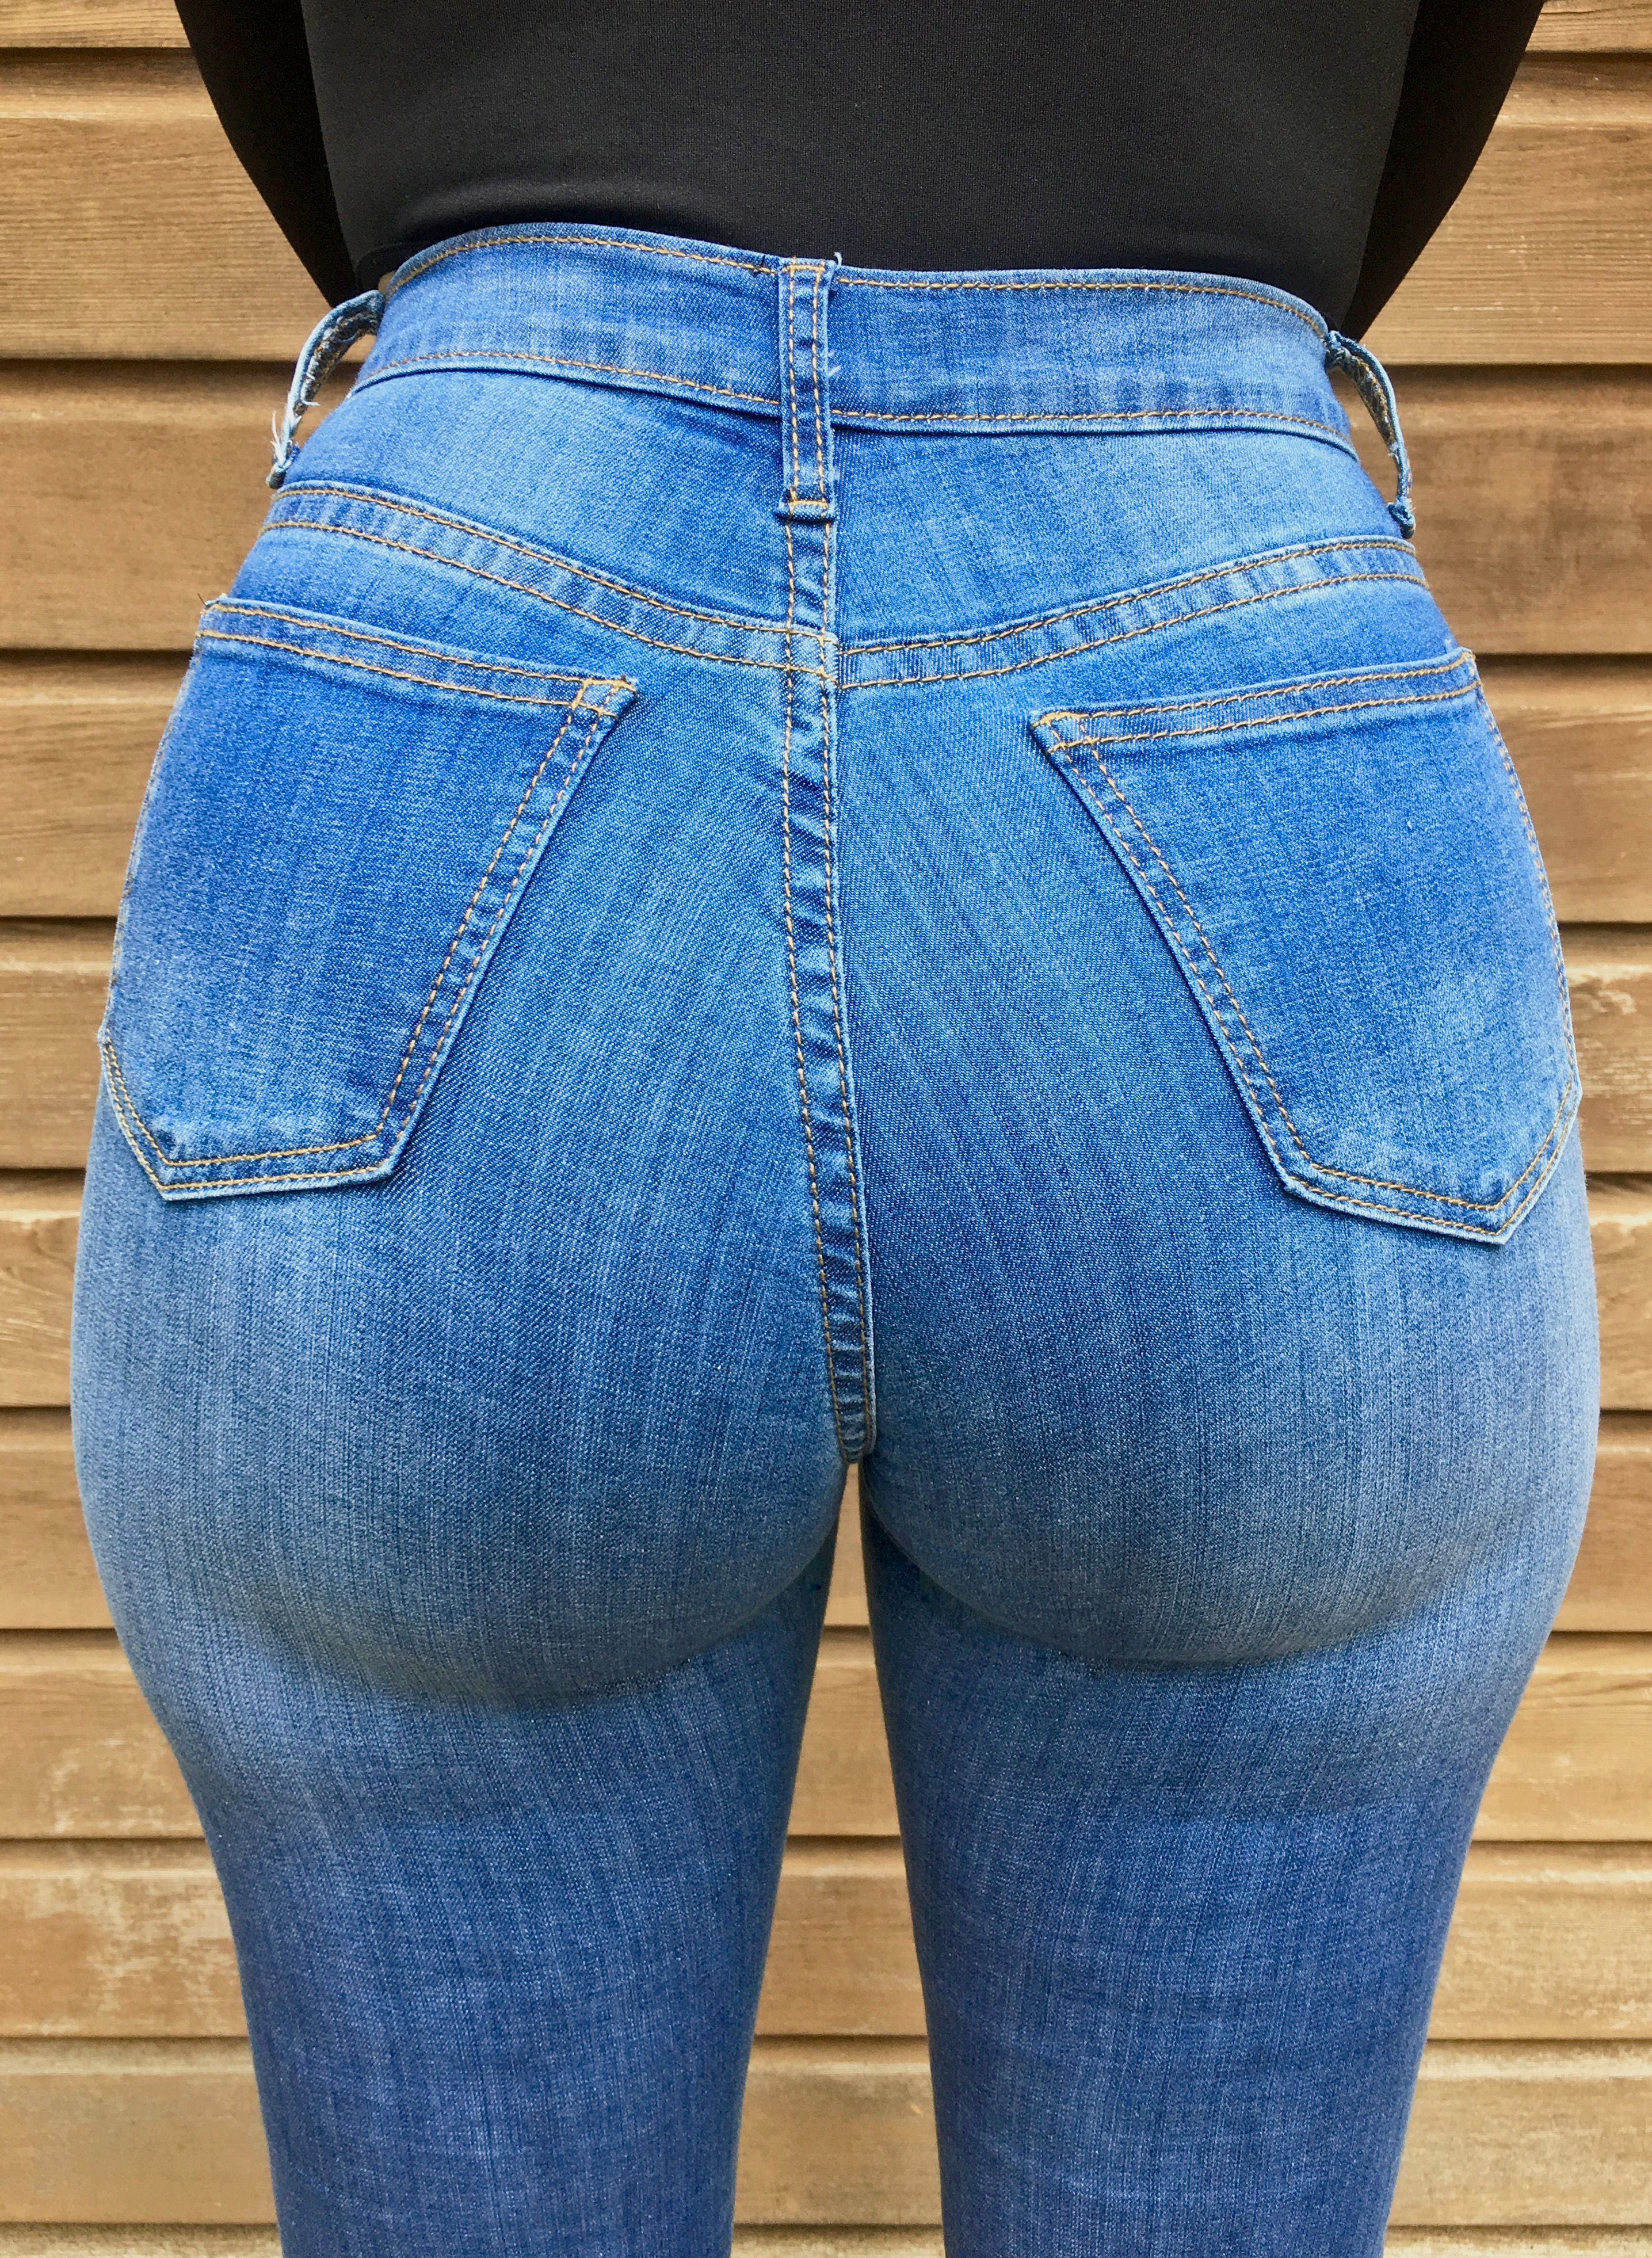 Curious.. chubby hot ass in tit blue jeans sorry, not